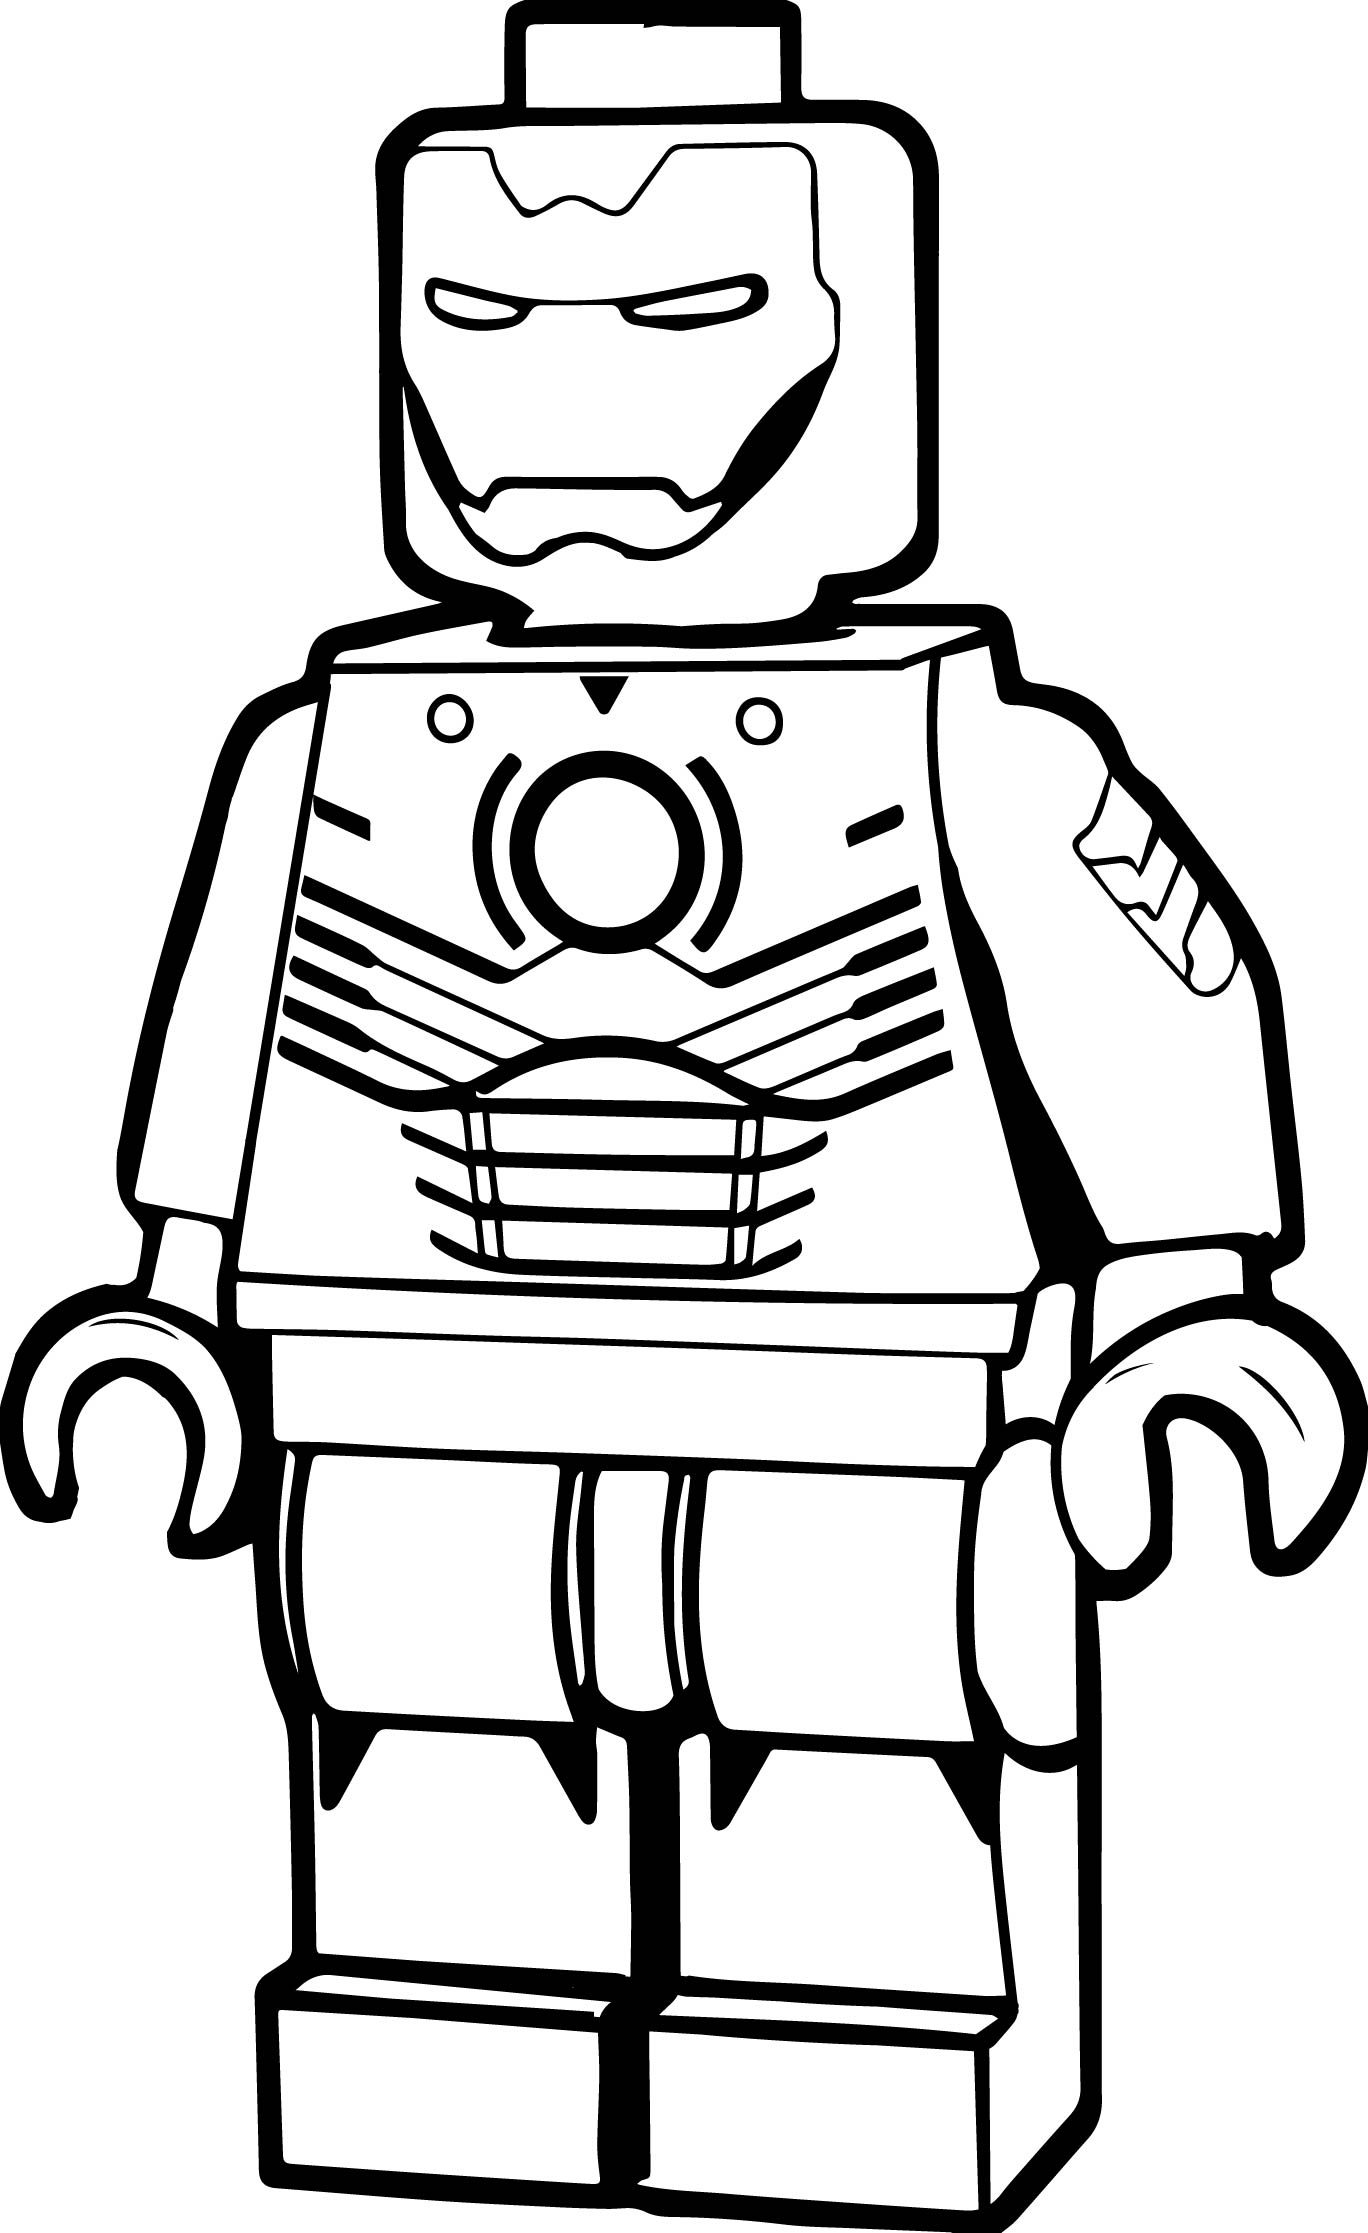 Iron Man Head Drawing at GetDrawings.com | Free for personal use ...